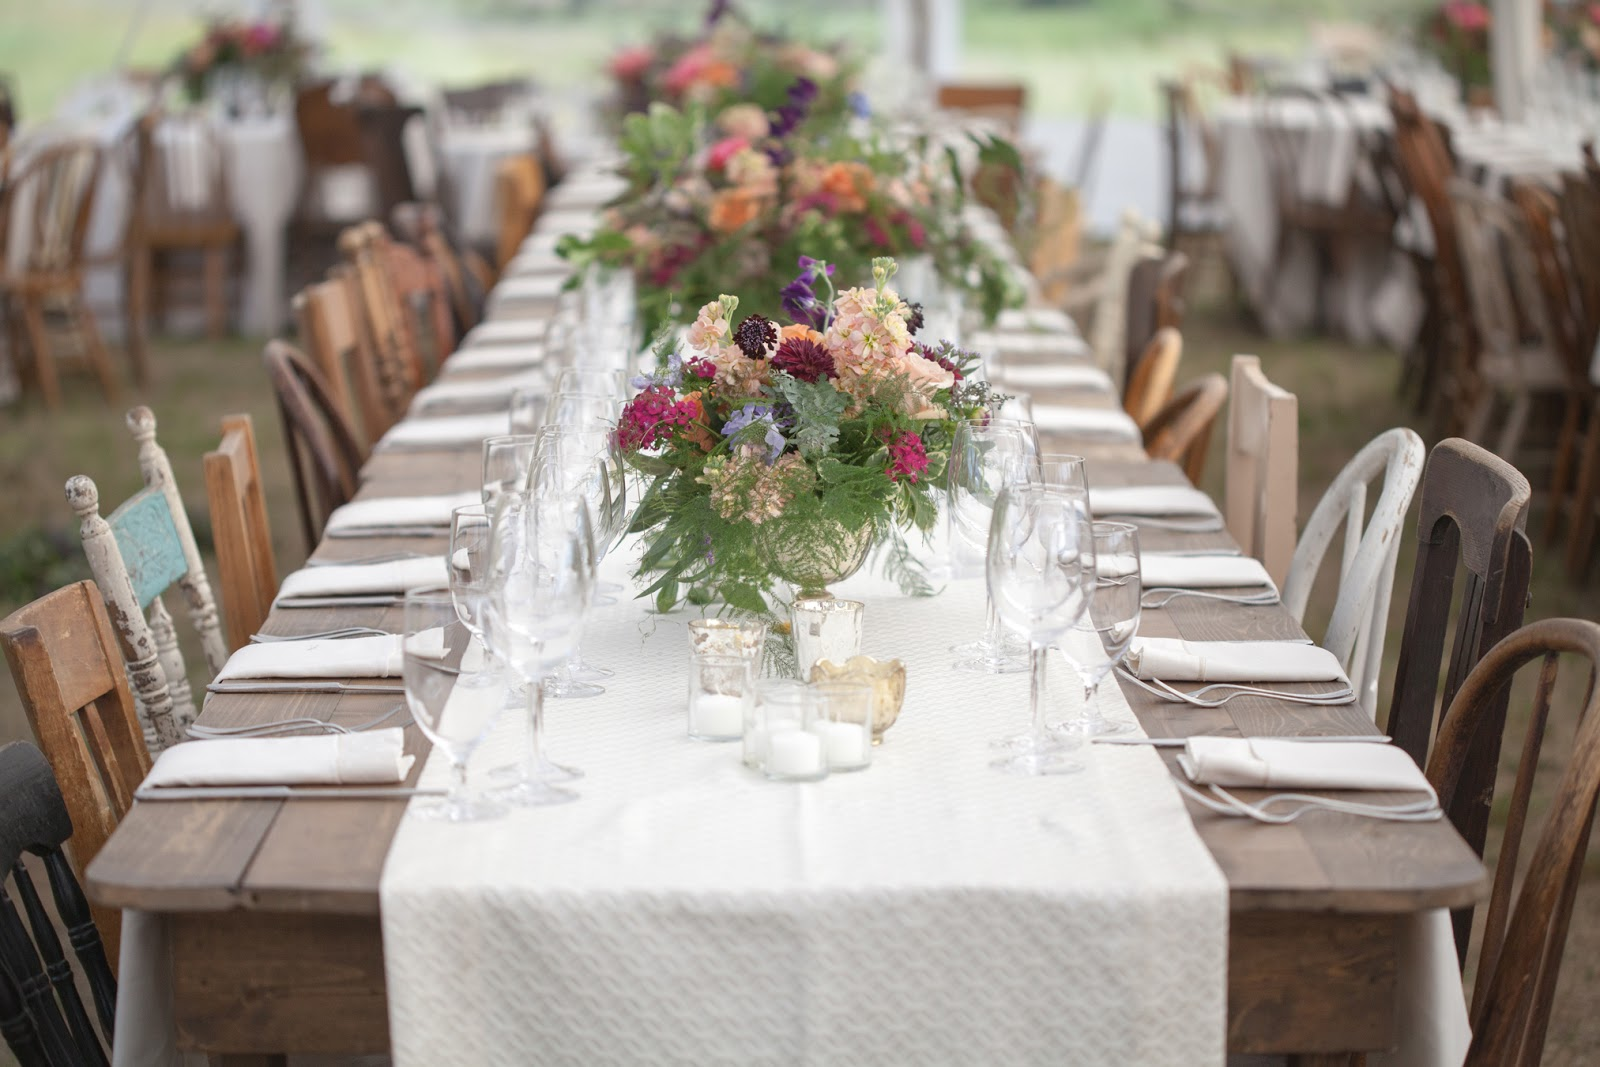 Photographer: Arnica Spring Photography / Wedding Design, Planning, & Wedding Flowers: Katalin Green